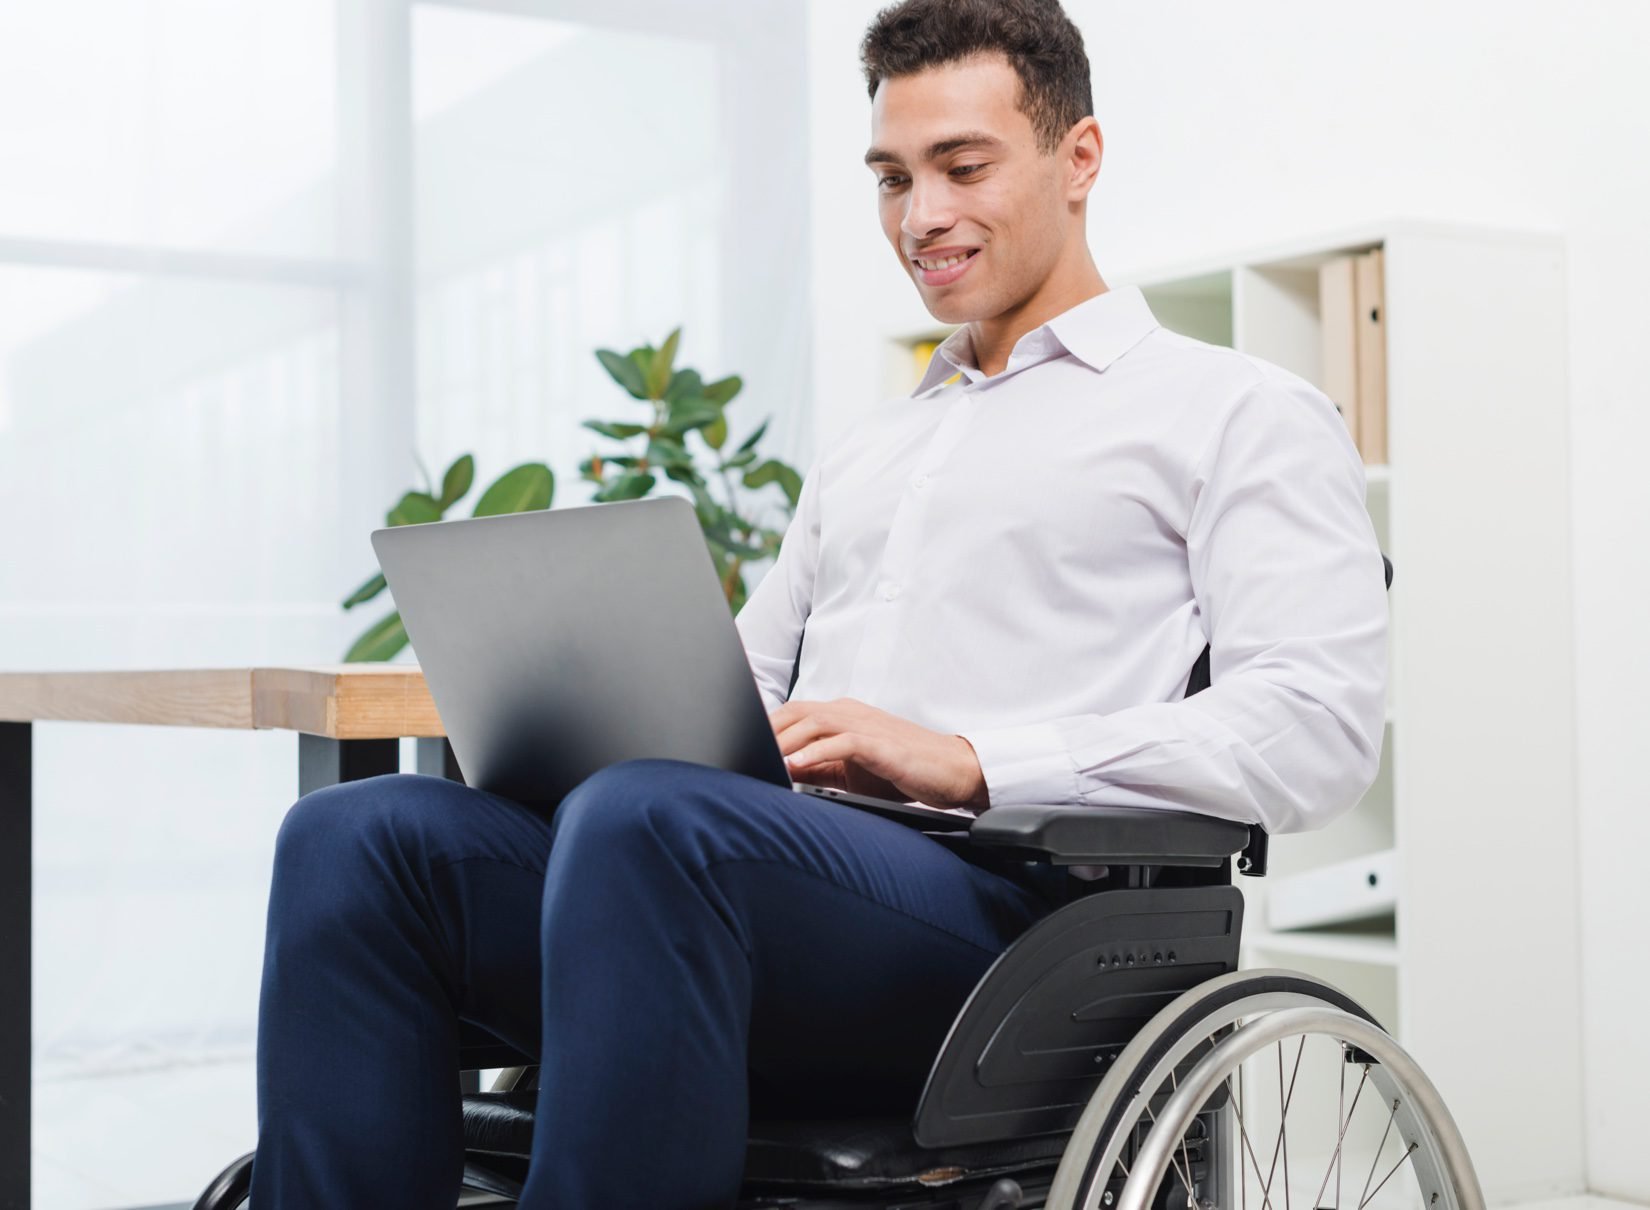 Man in a wheelchair looking at laptop on his lap and smiling.